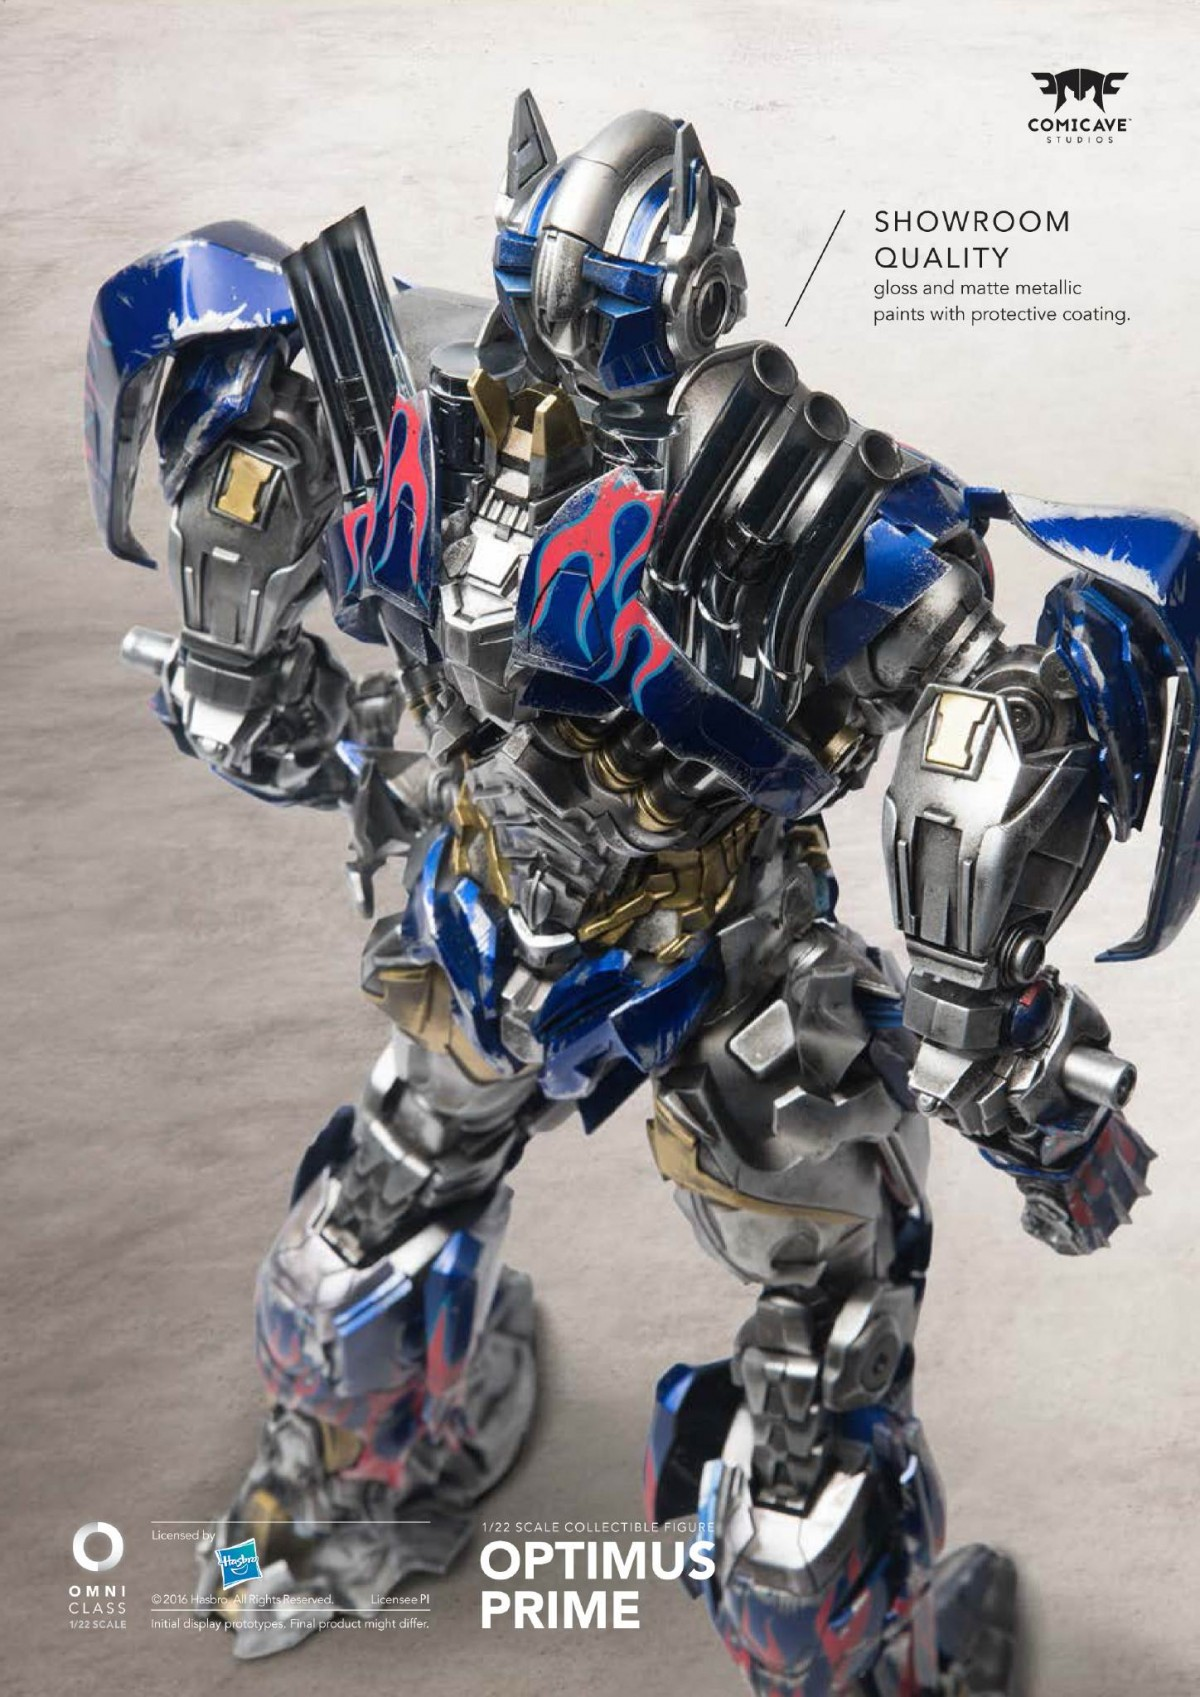 Transformers News: Re: Toy Fair 2016 - Comicave Studios Transformers Collectable Figures #HasbroToyFair #TFNY